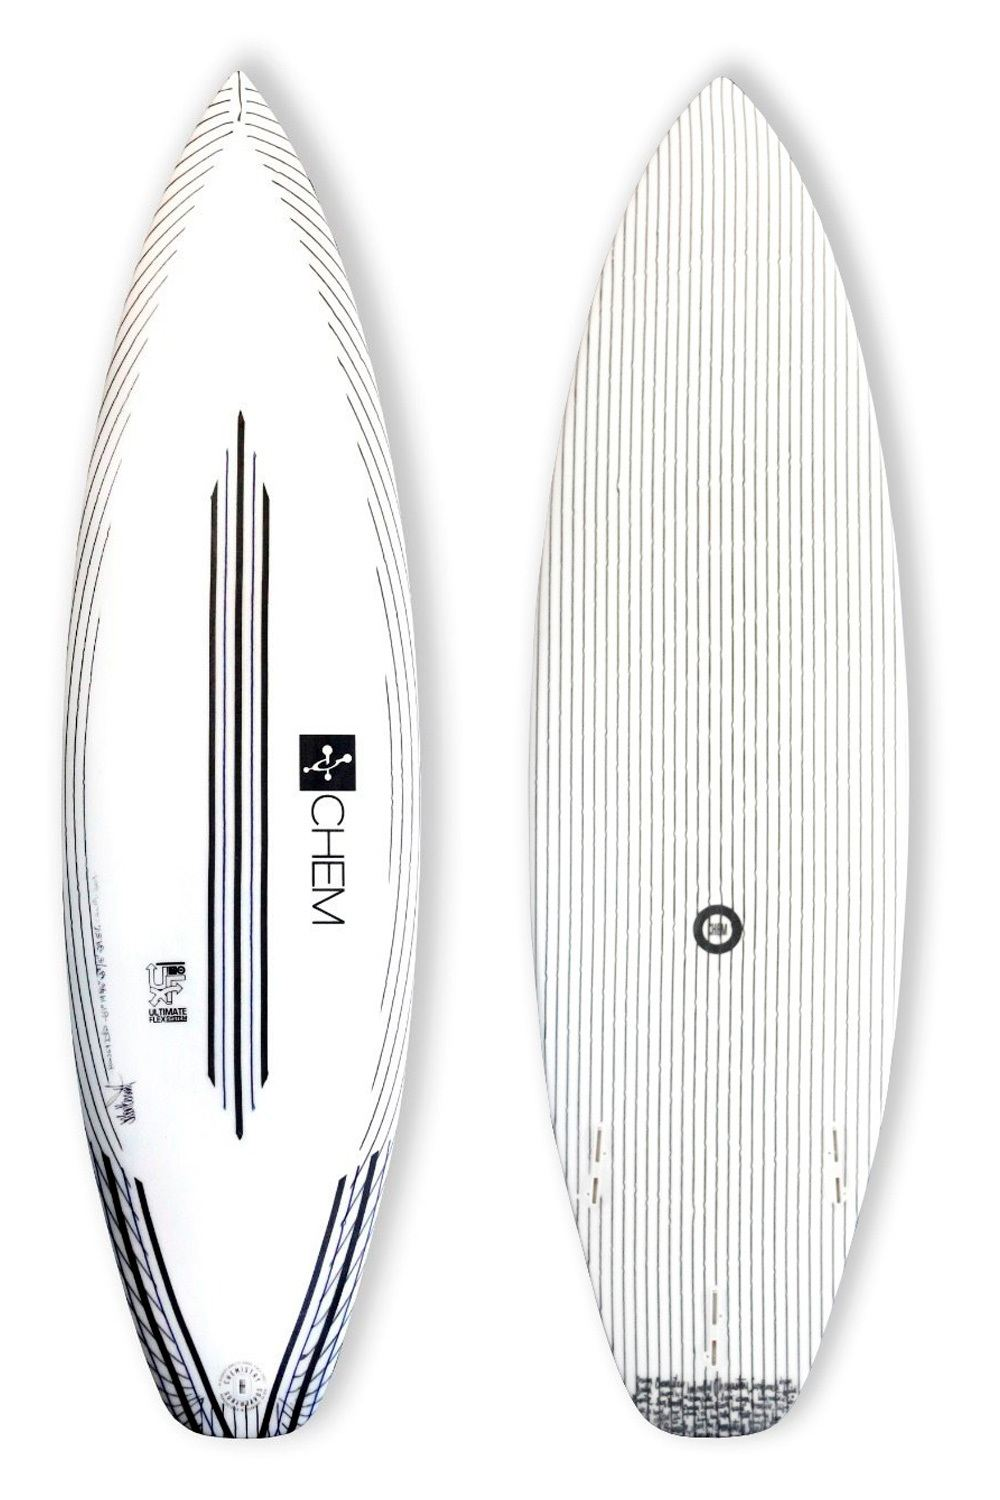 HONEY DIP 6'0 - ULTIMATE FLEX SYSTEM